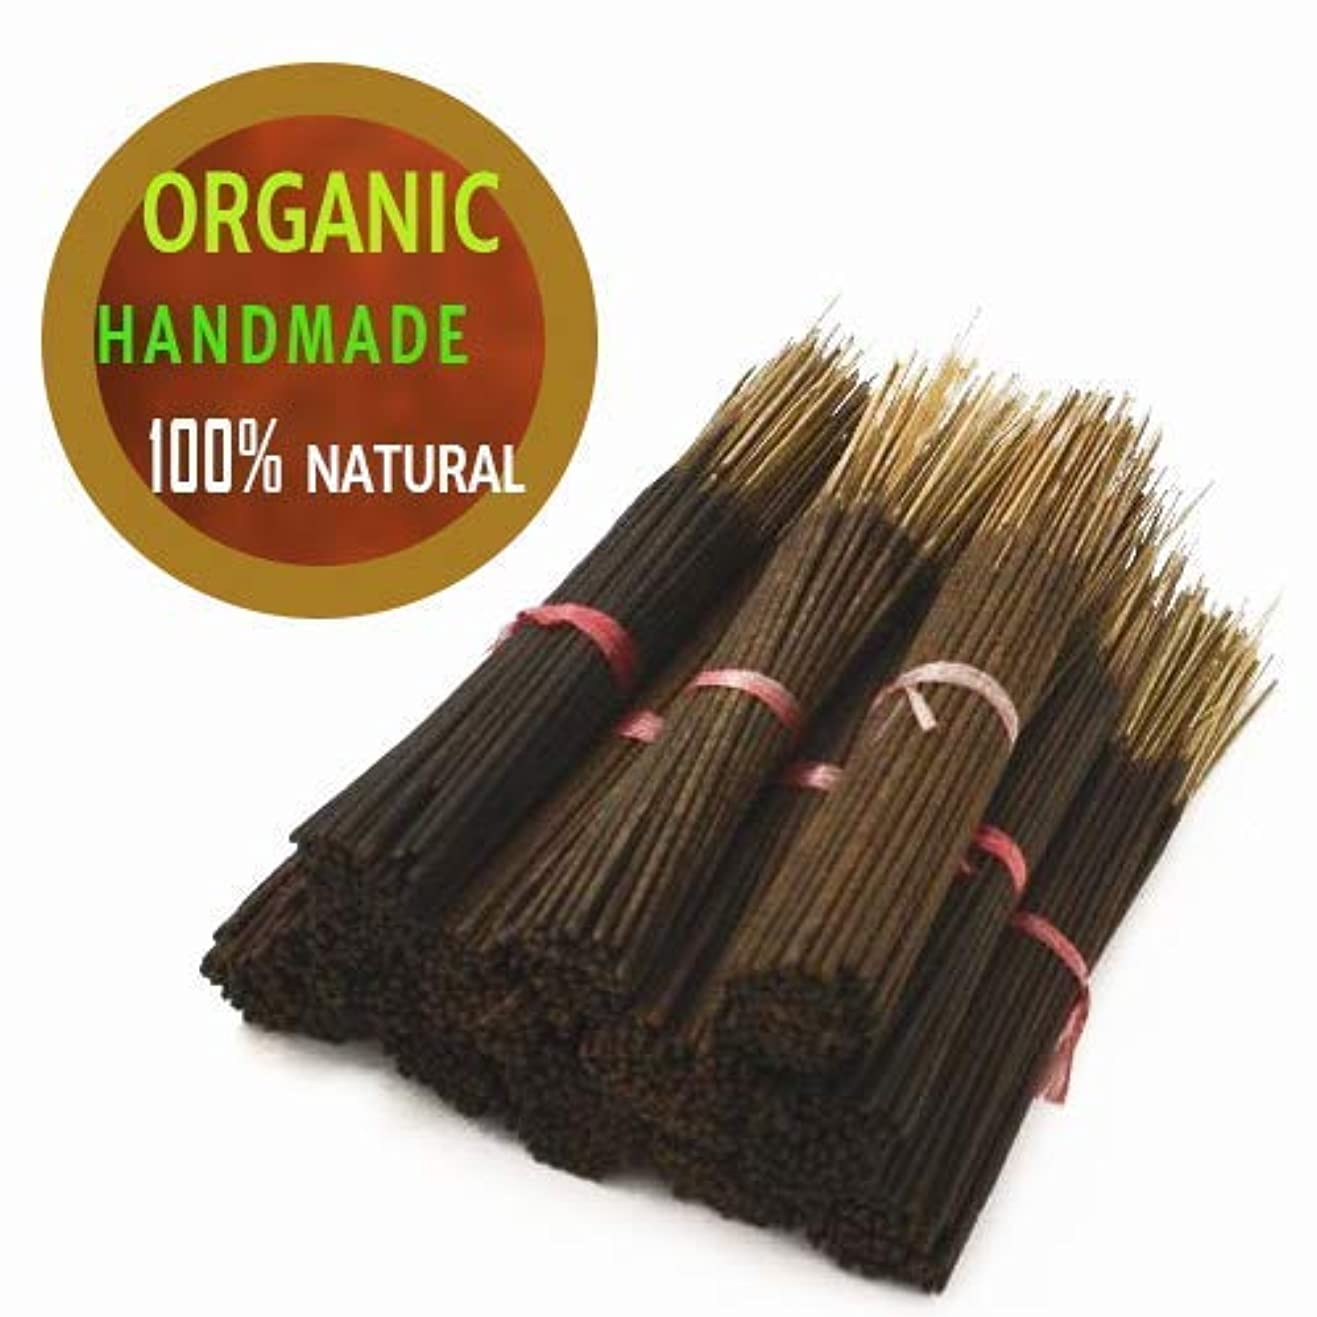 Yajna Frankincense And Myrrh 100% Natural Incense Sticks Handmade Hand Dipped The Best Woods Scent (500 Pack-100...